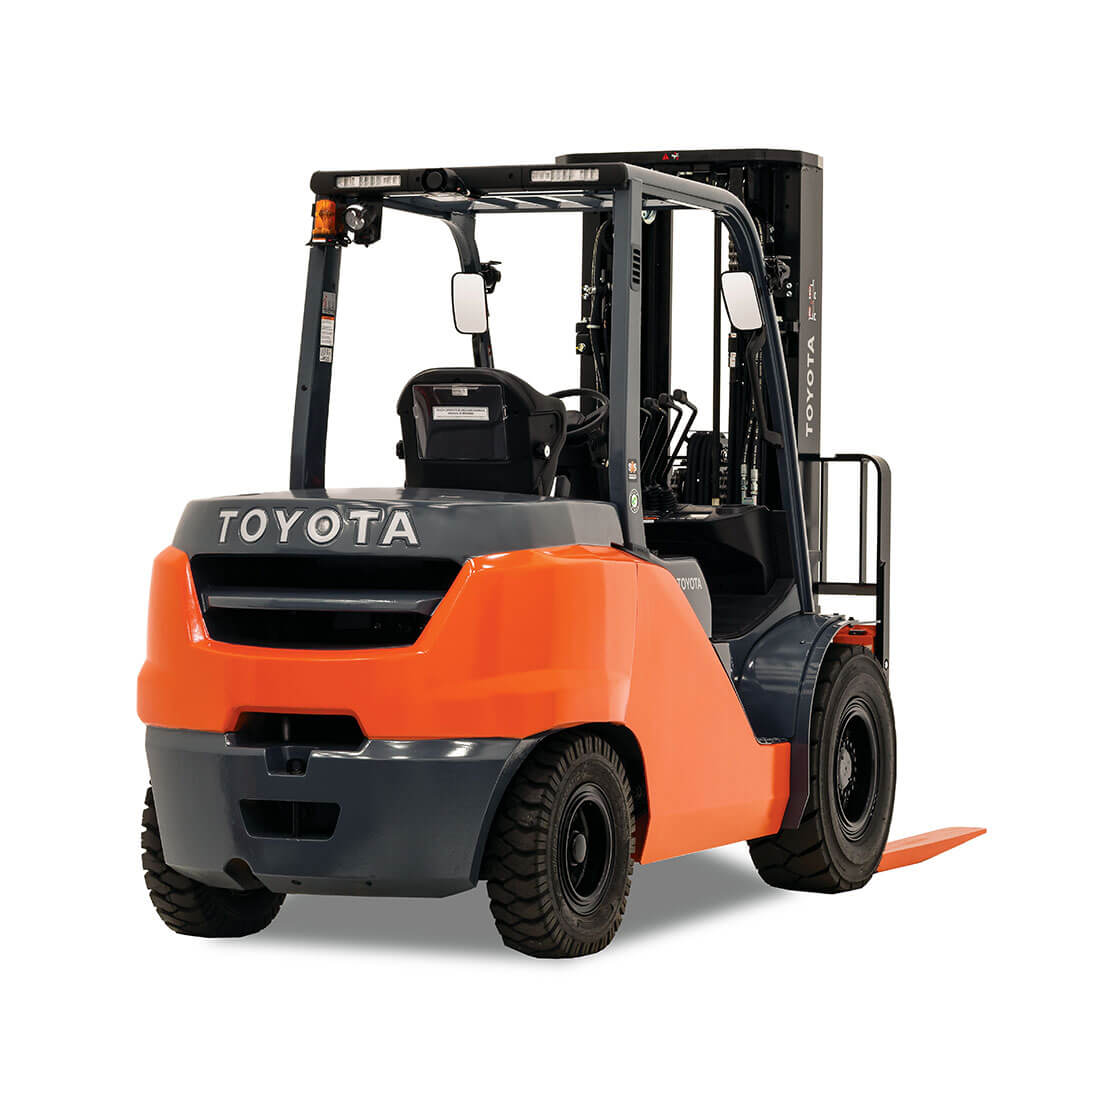 Mid IC Pneumatic forklift rear view 1